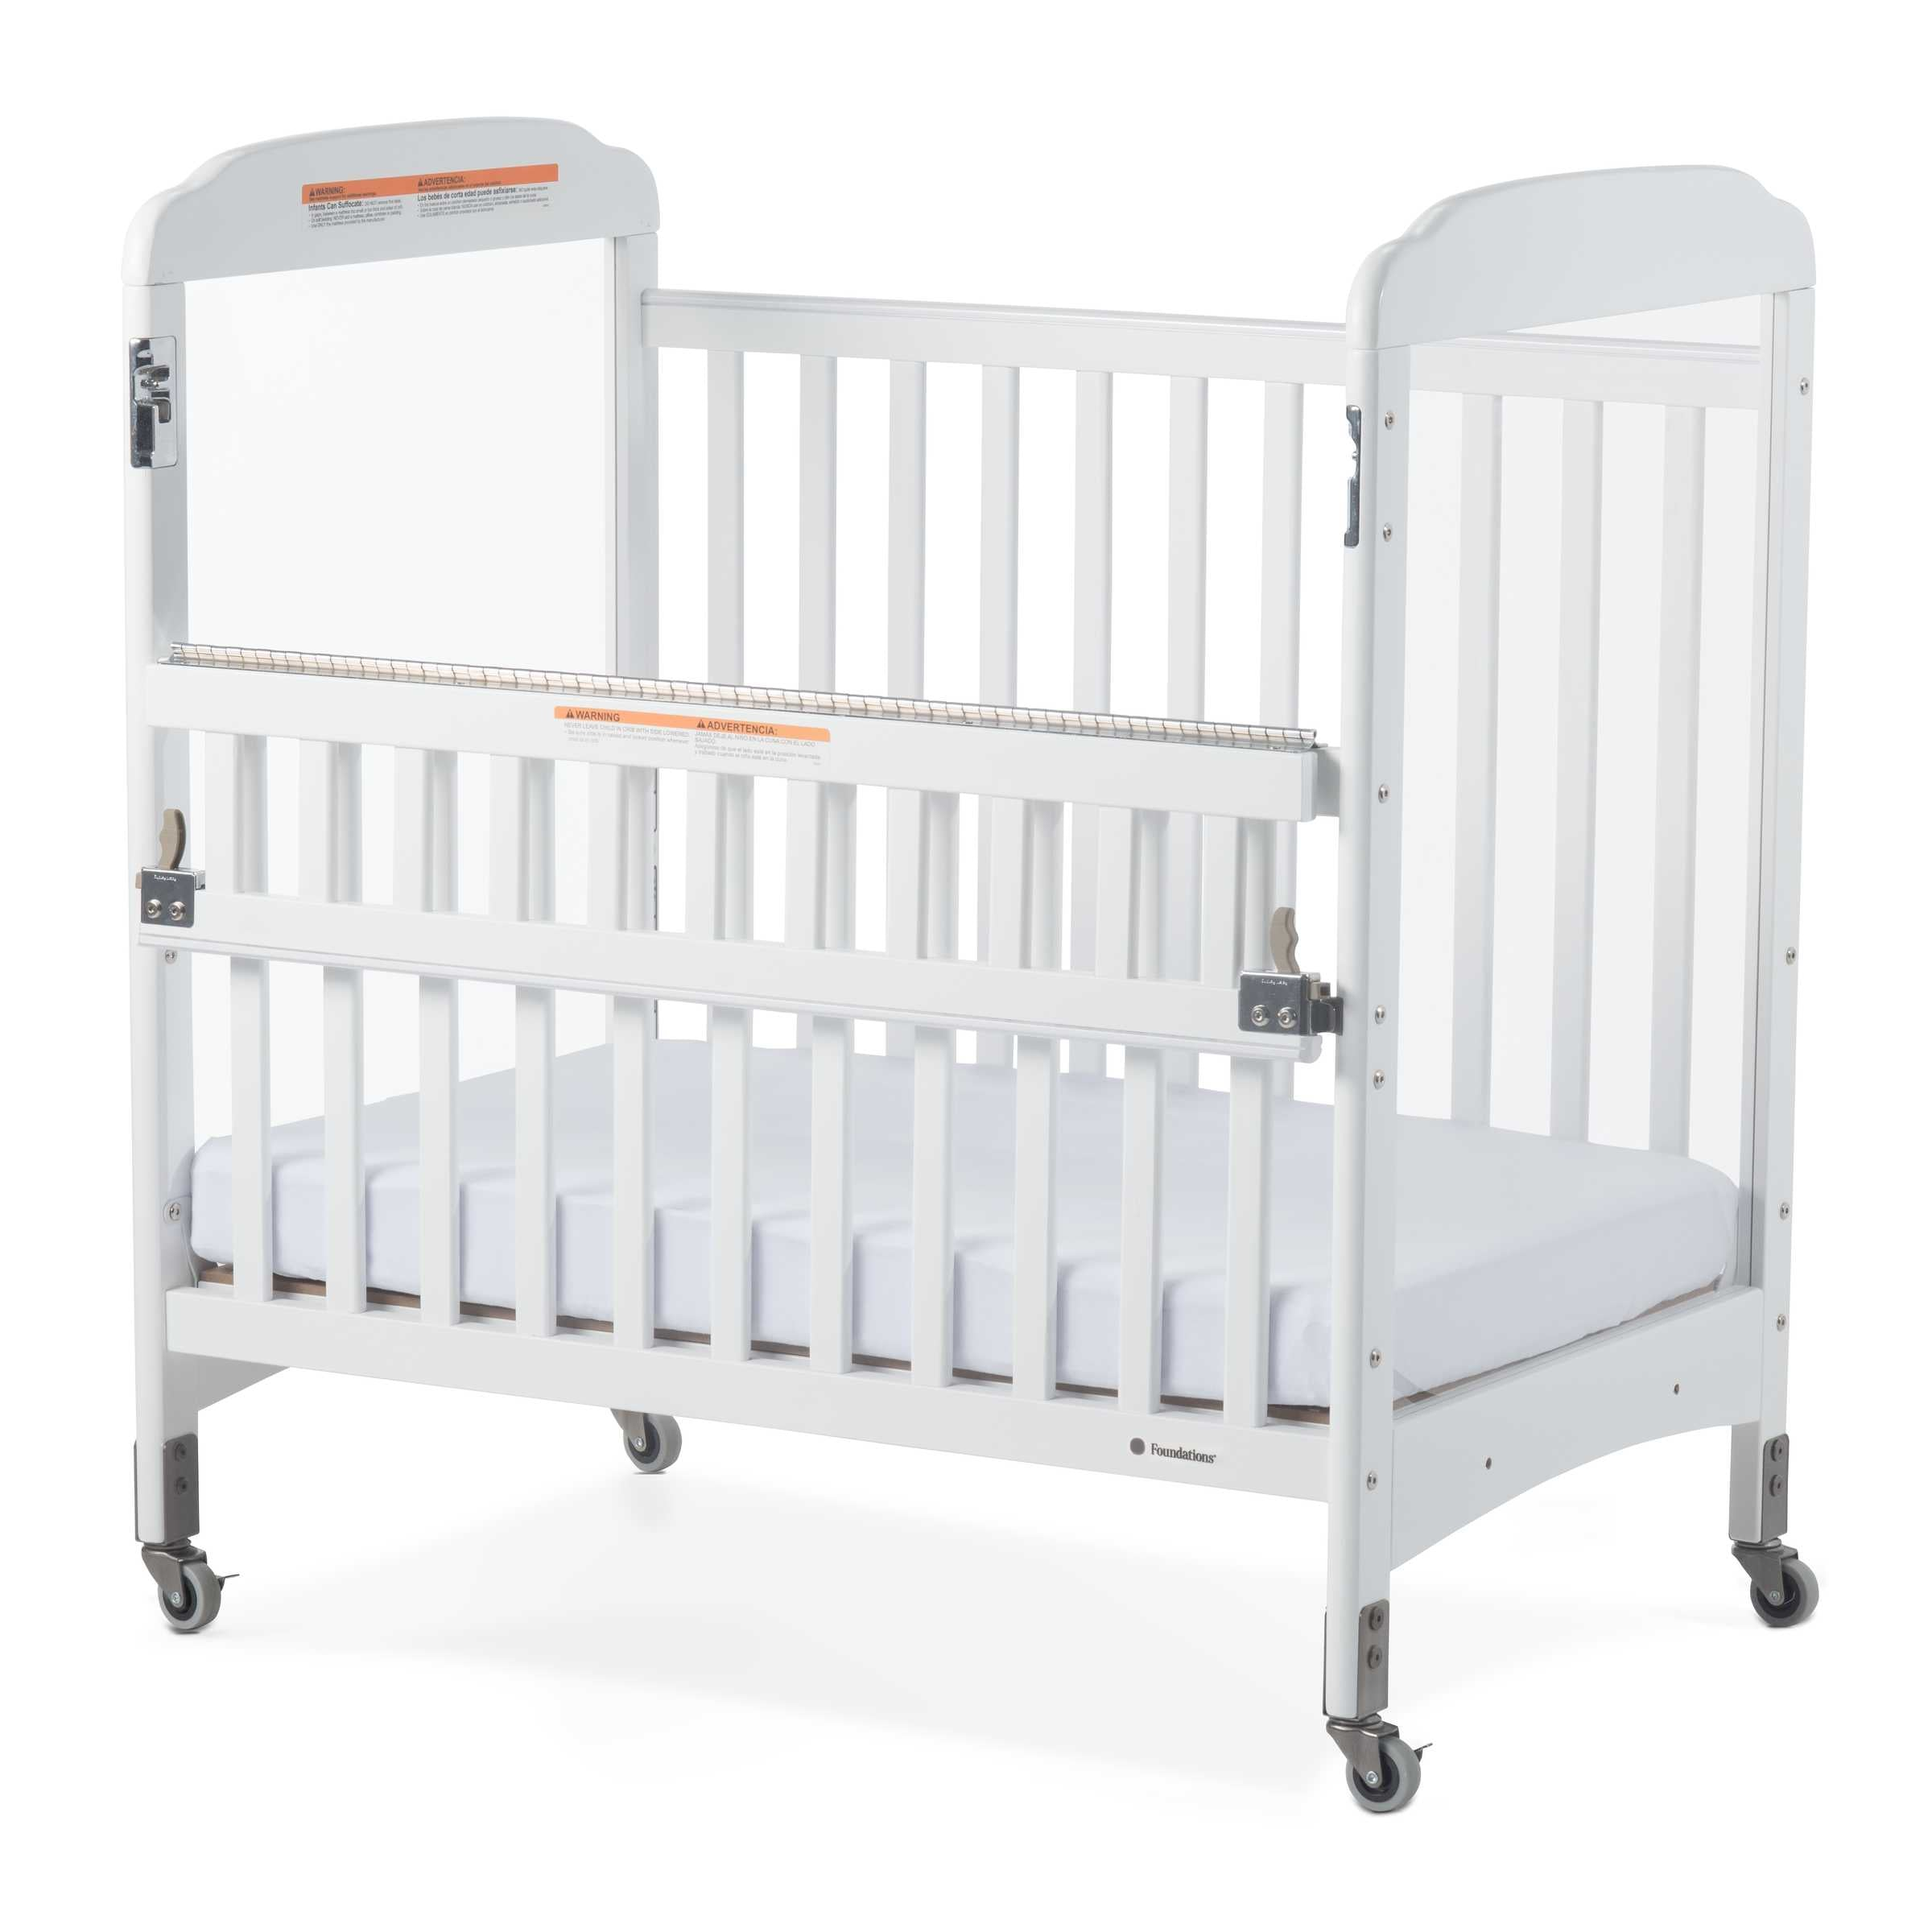 fixed factory natural detail compact gen through serenity side toddler see infant clearview cribs collections next crib fixedside select